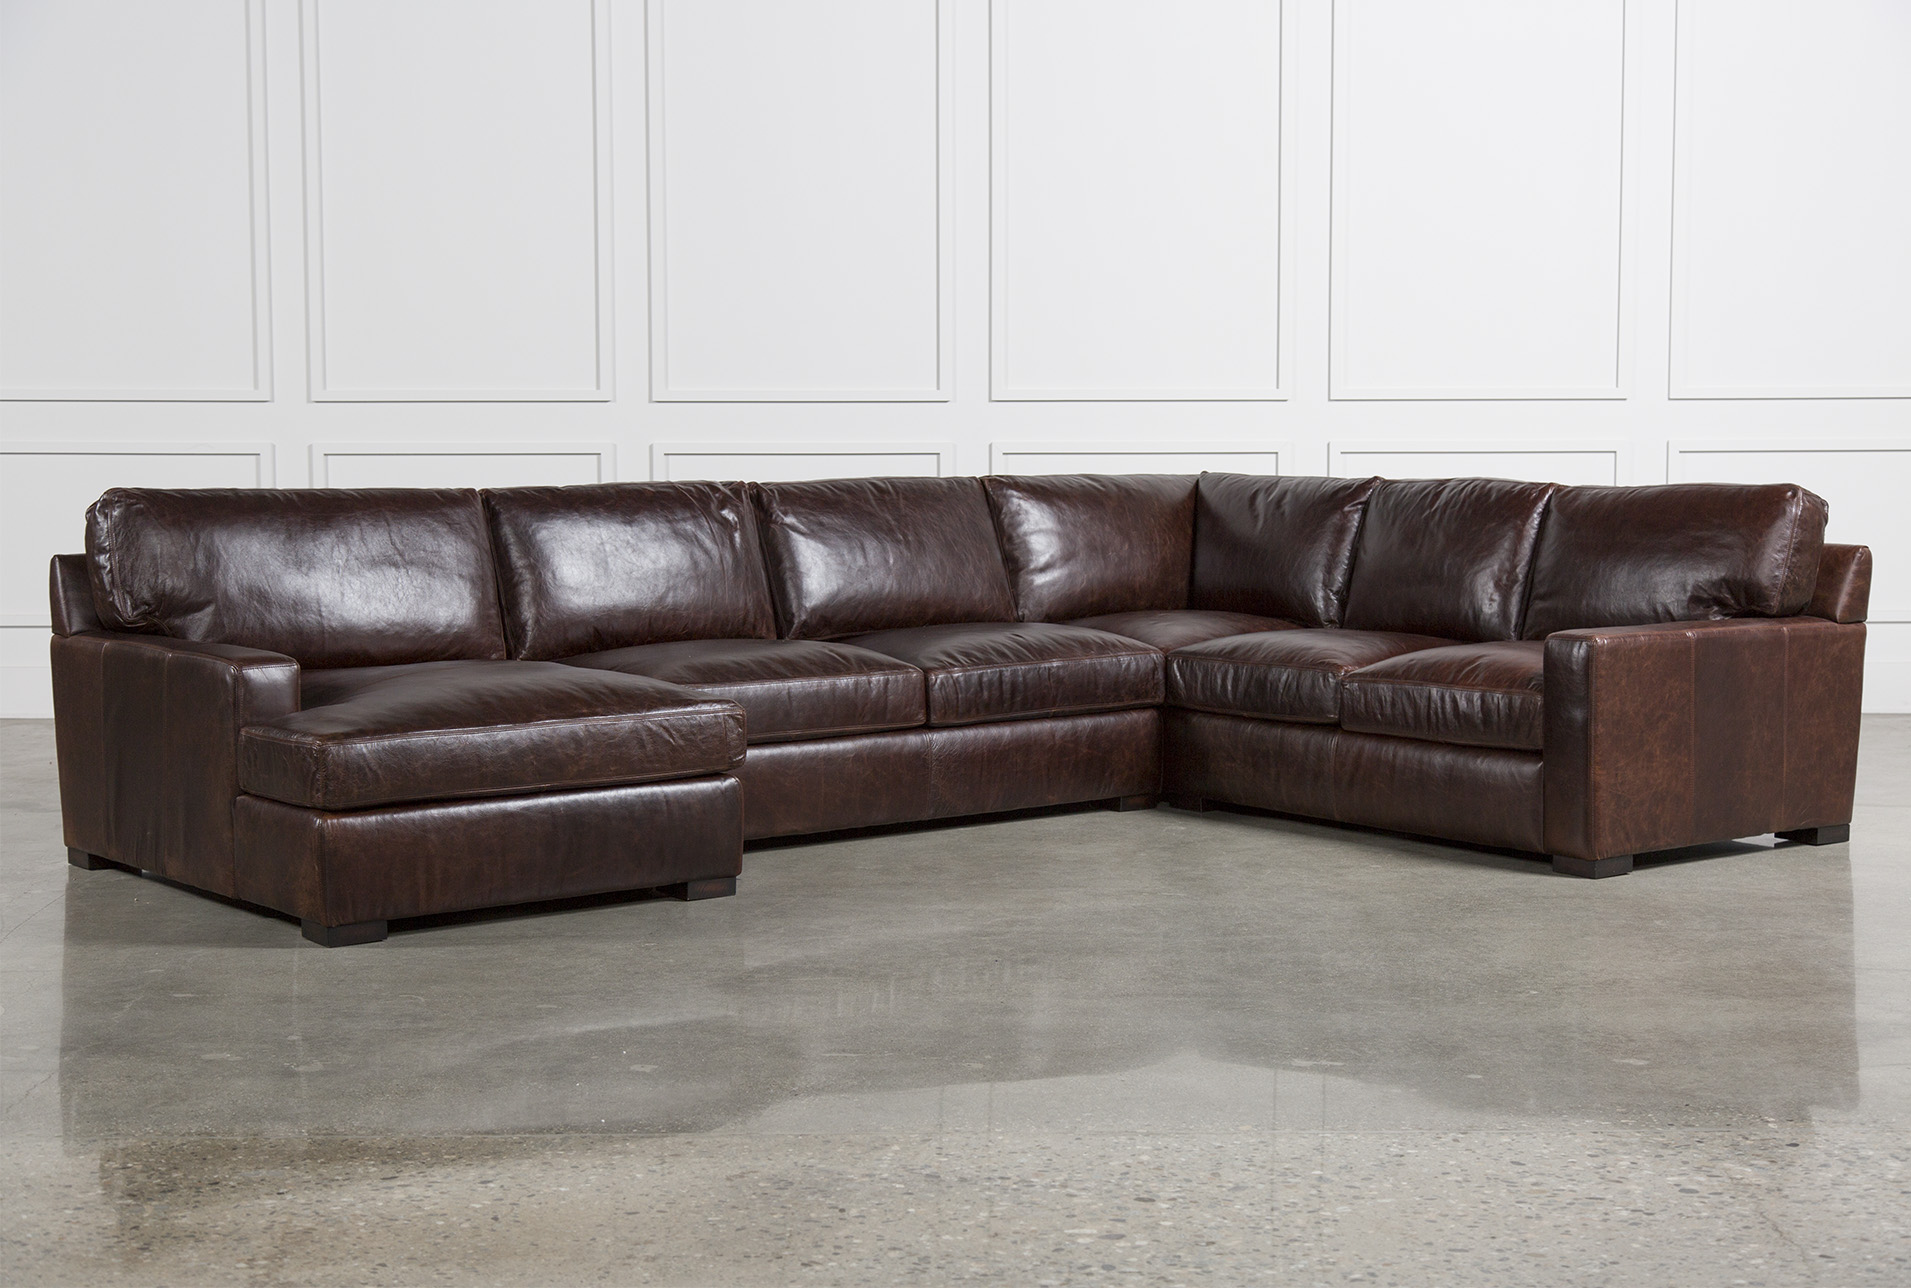 Gordon 3 Piece Sectional W/Laf Chaise (Qty: 1) Has Been Successfully Added  To Your Cart.